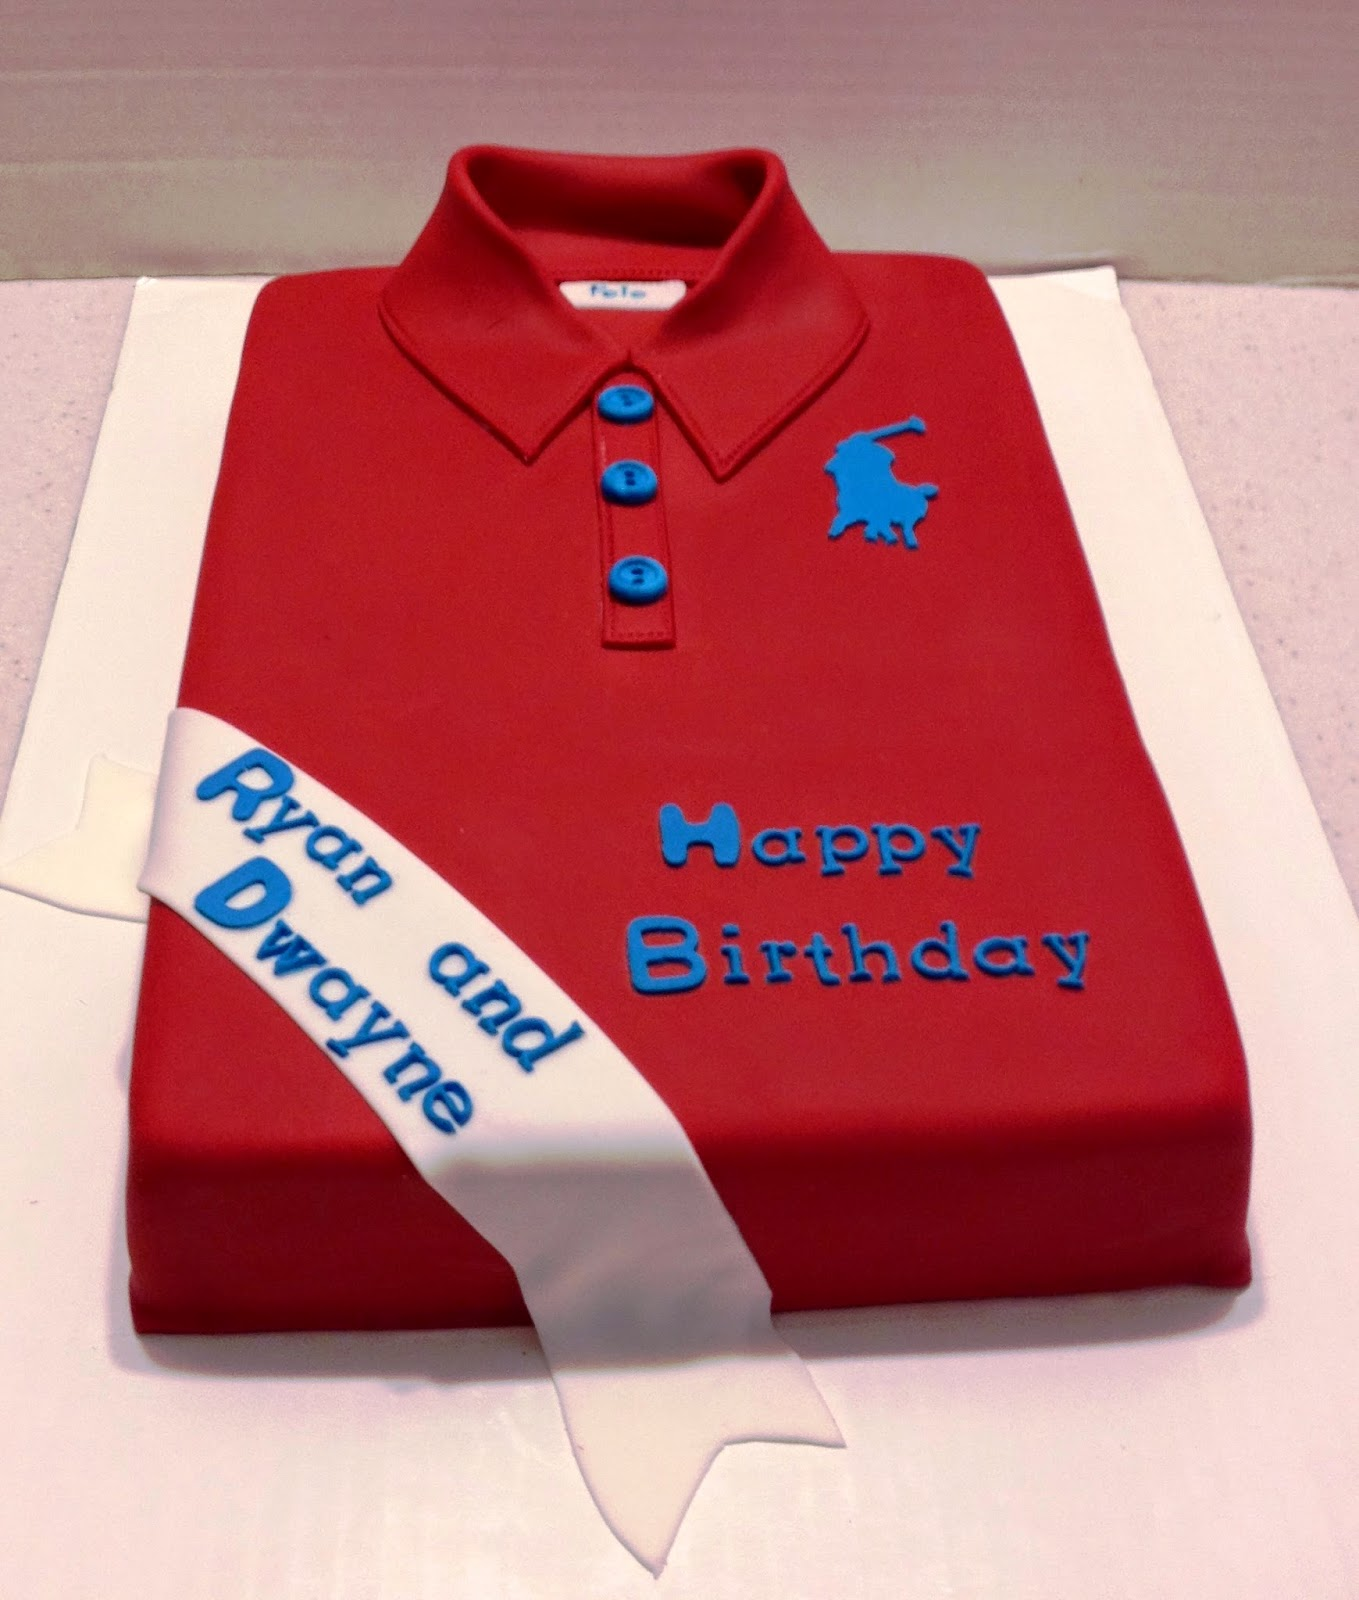 MaryMel Cakes: Polo shirt double birthdays